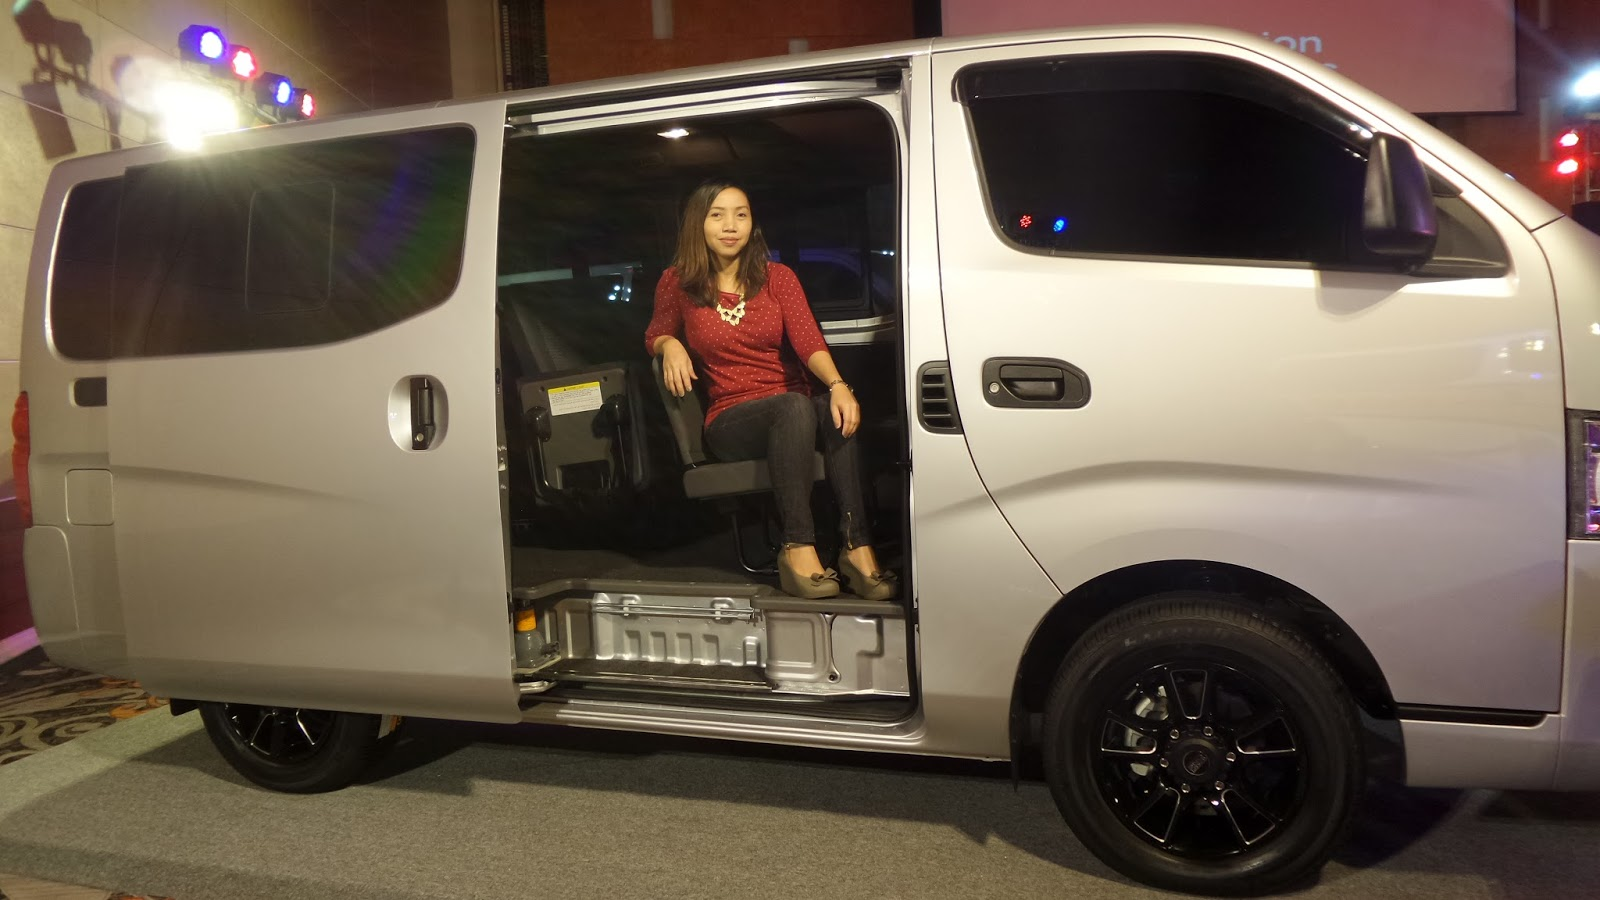 I could definitely see myself my family relatives and friends enjoying the comfort nissan nv350 urvan brings